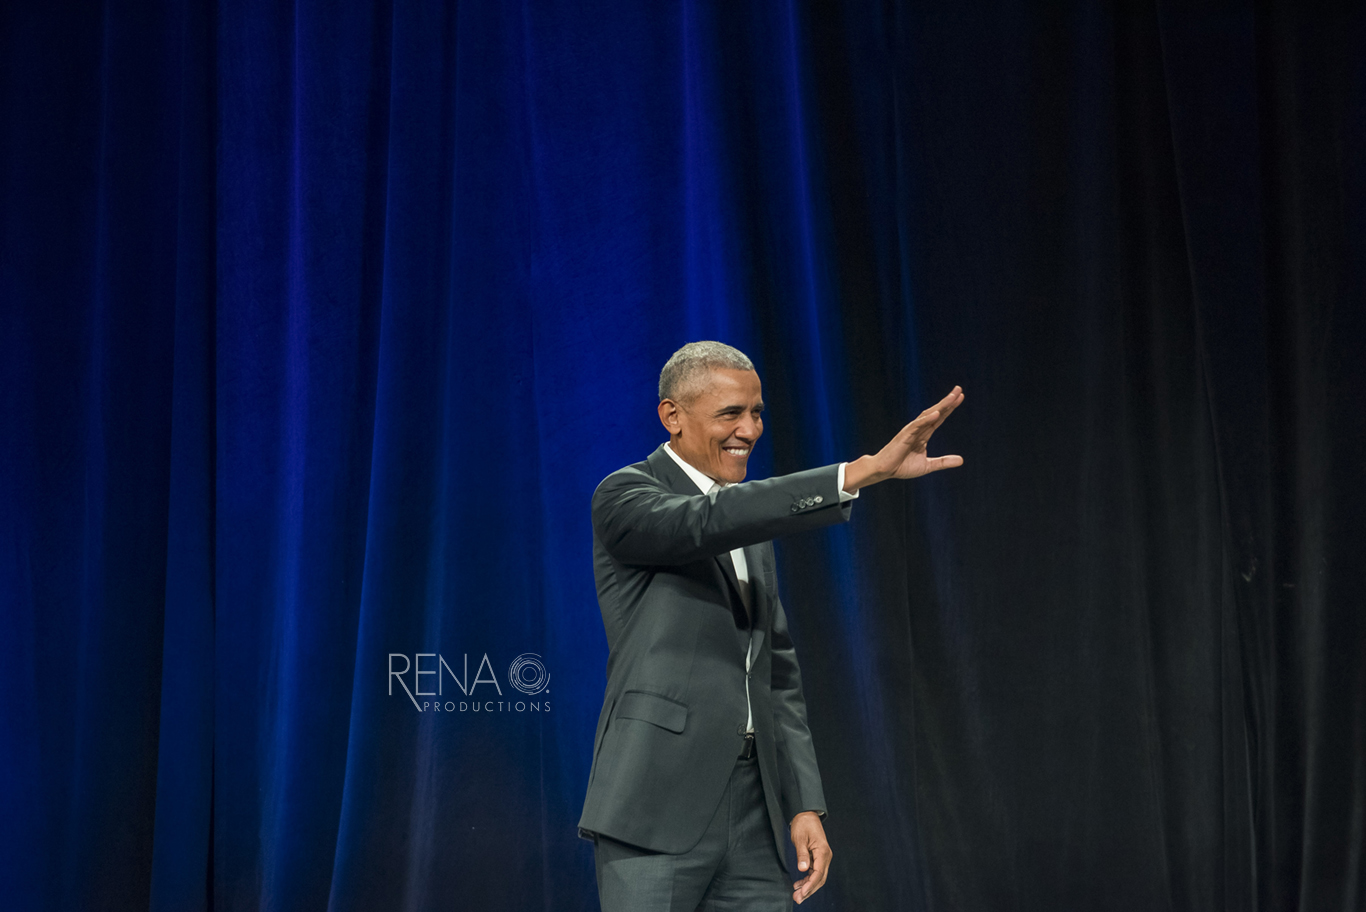 Obama speaking at a conference